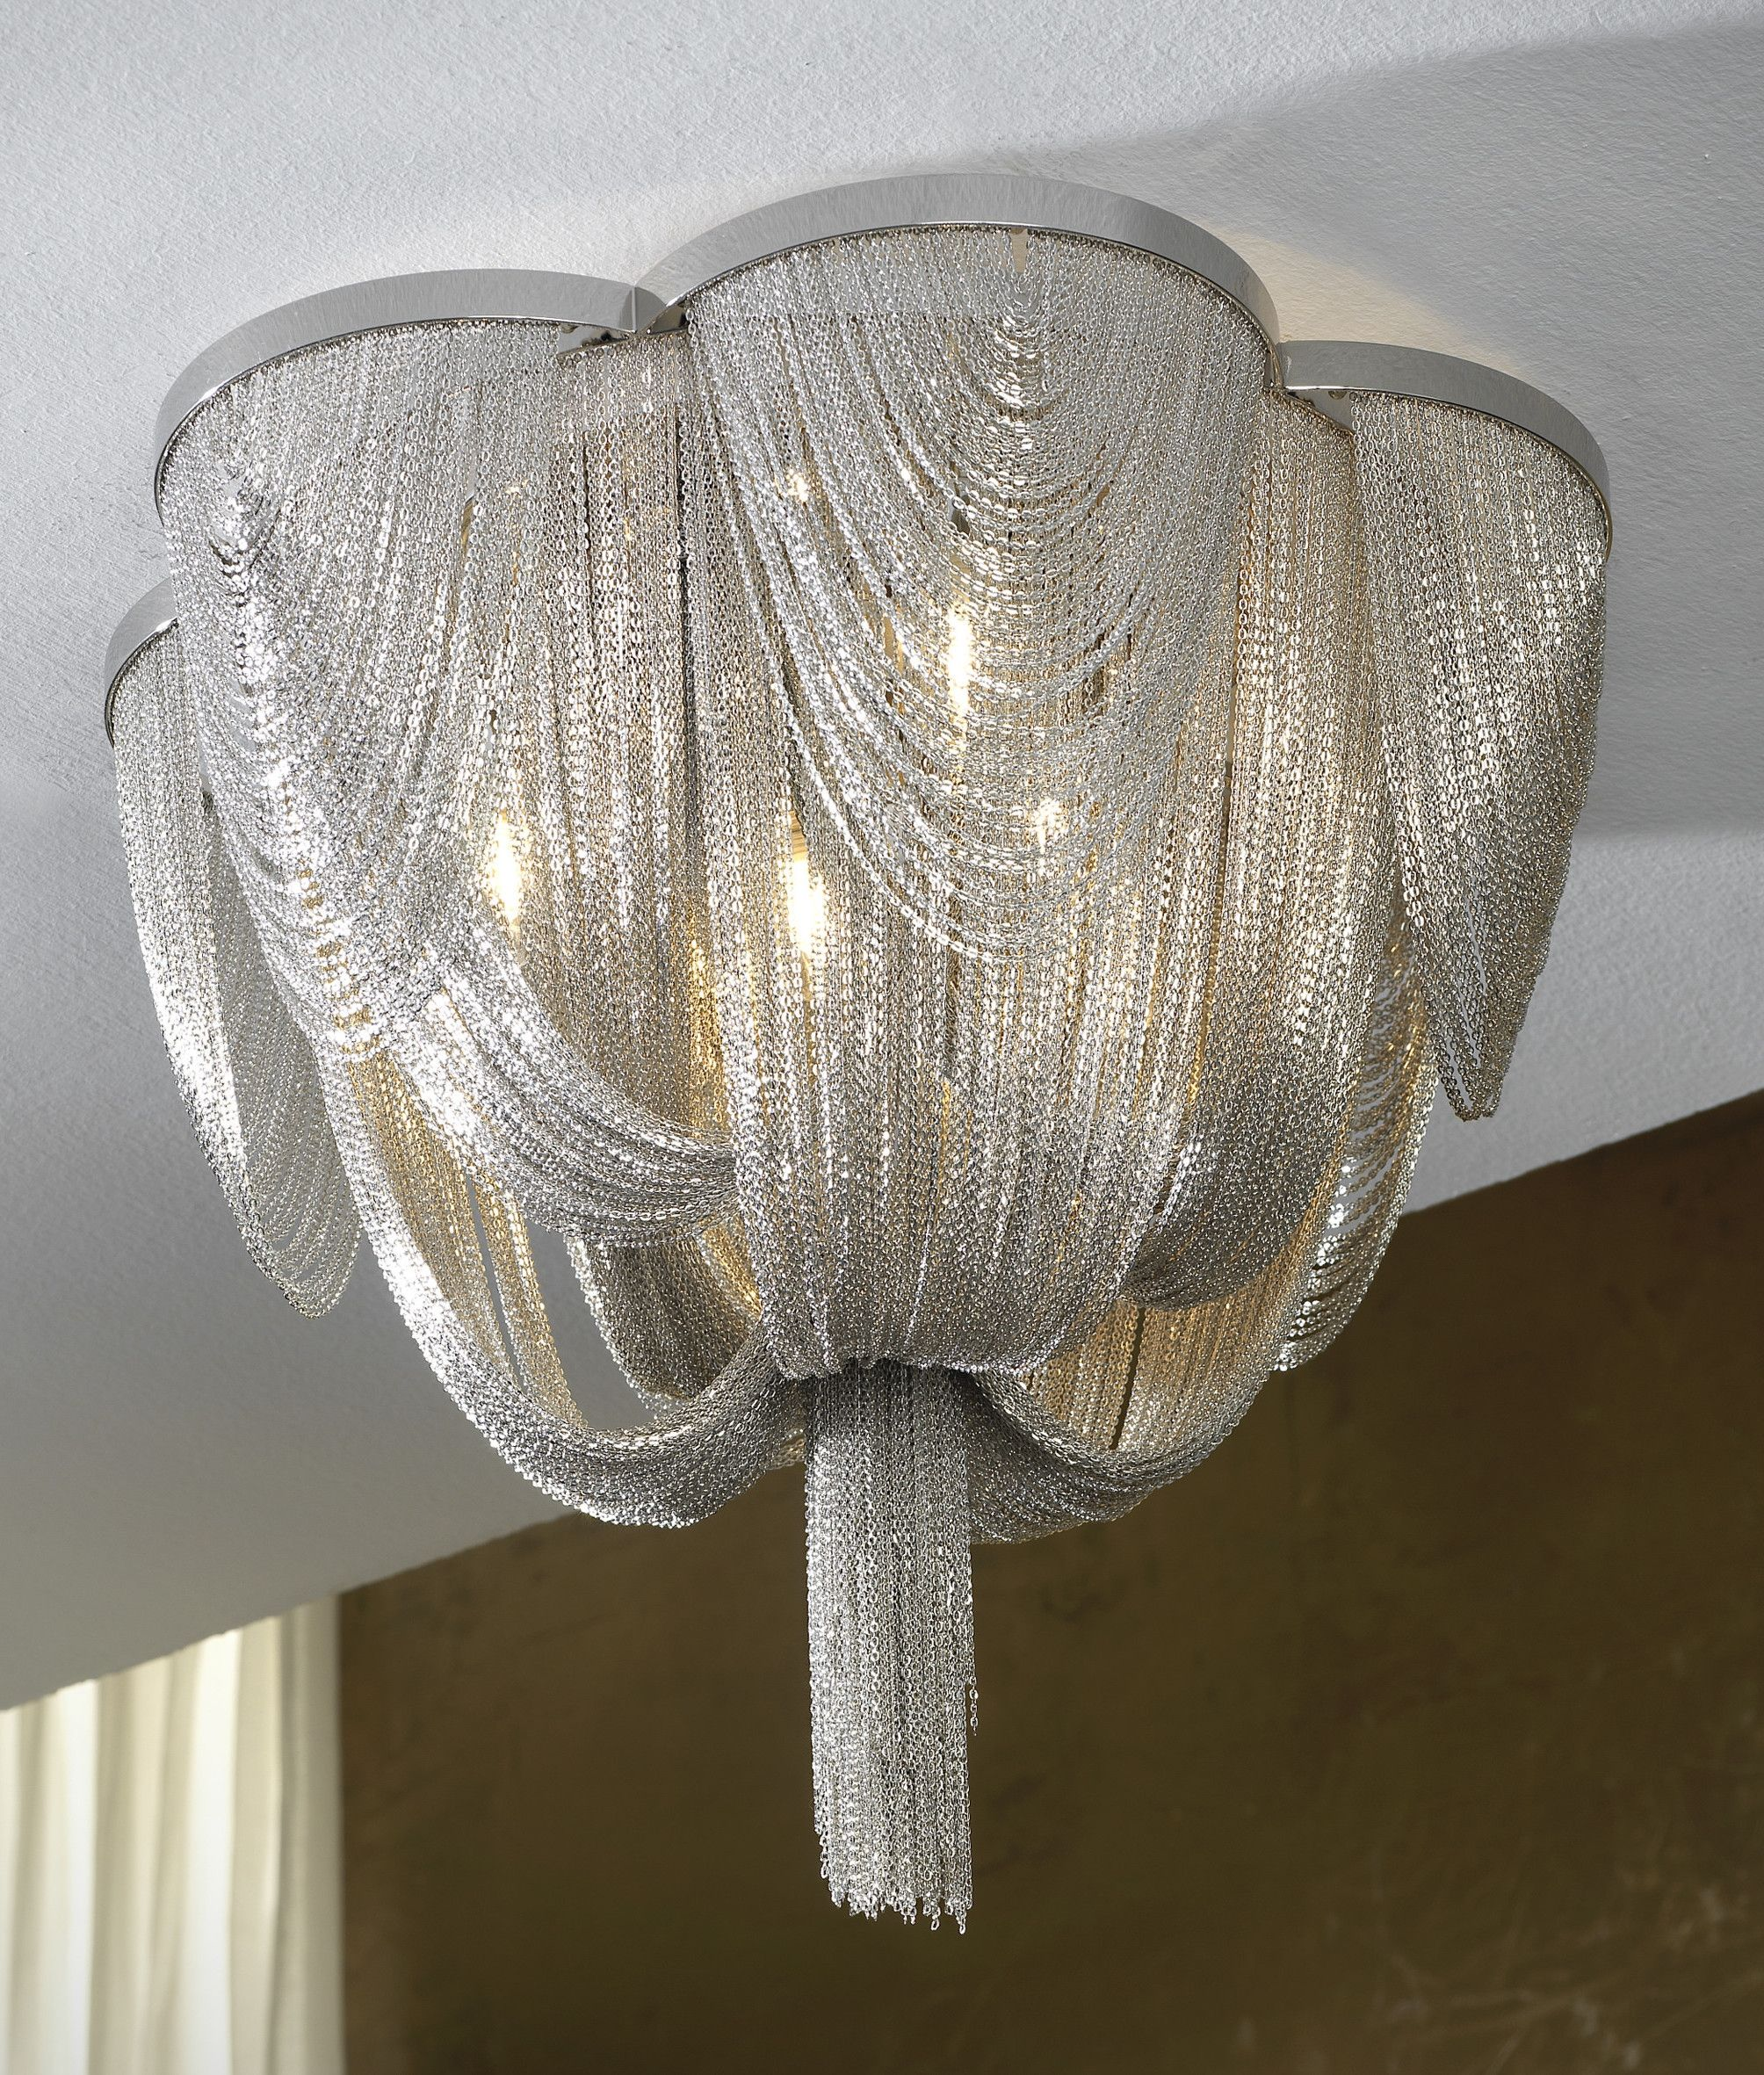 Chain Hanging Ceiling Light Ceiling Lights Hanging Ceiling Lights Flush Ceiling Lights